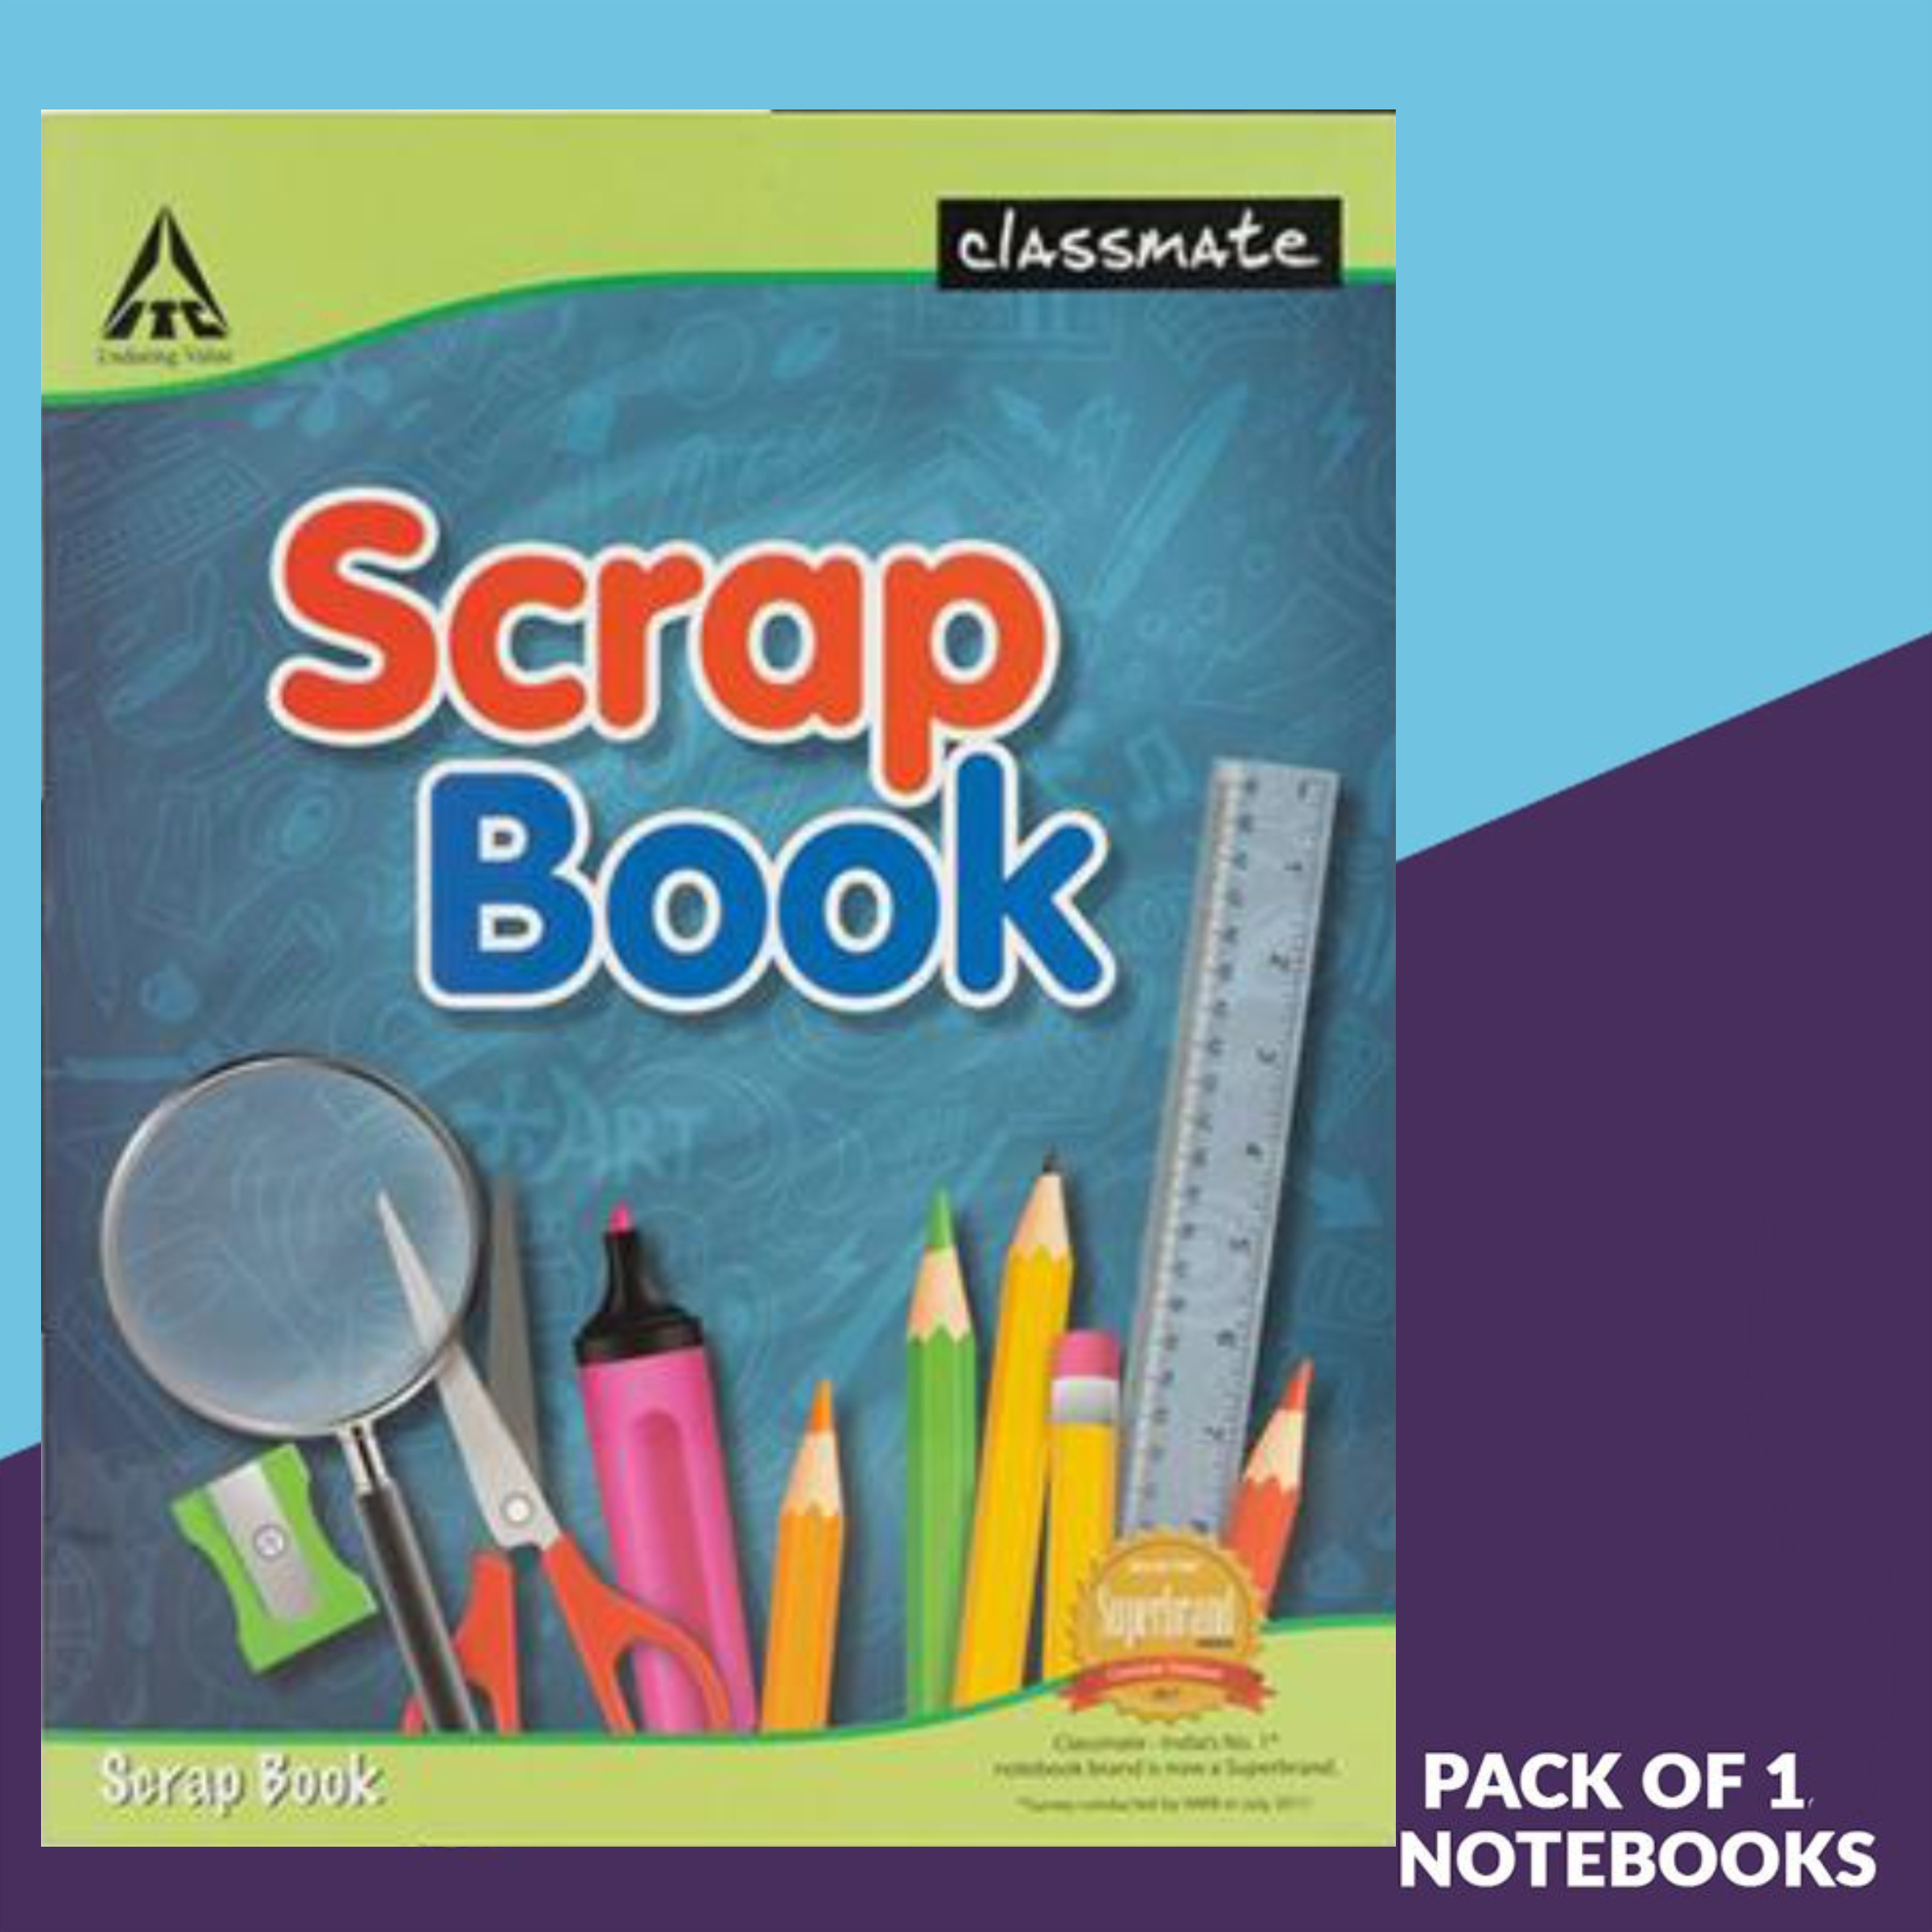 Classmate Scrap Book Soft Cover 36 Pages 28X22 cm Plain and Ruled Pack of 1